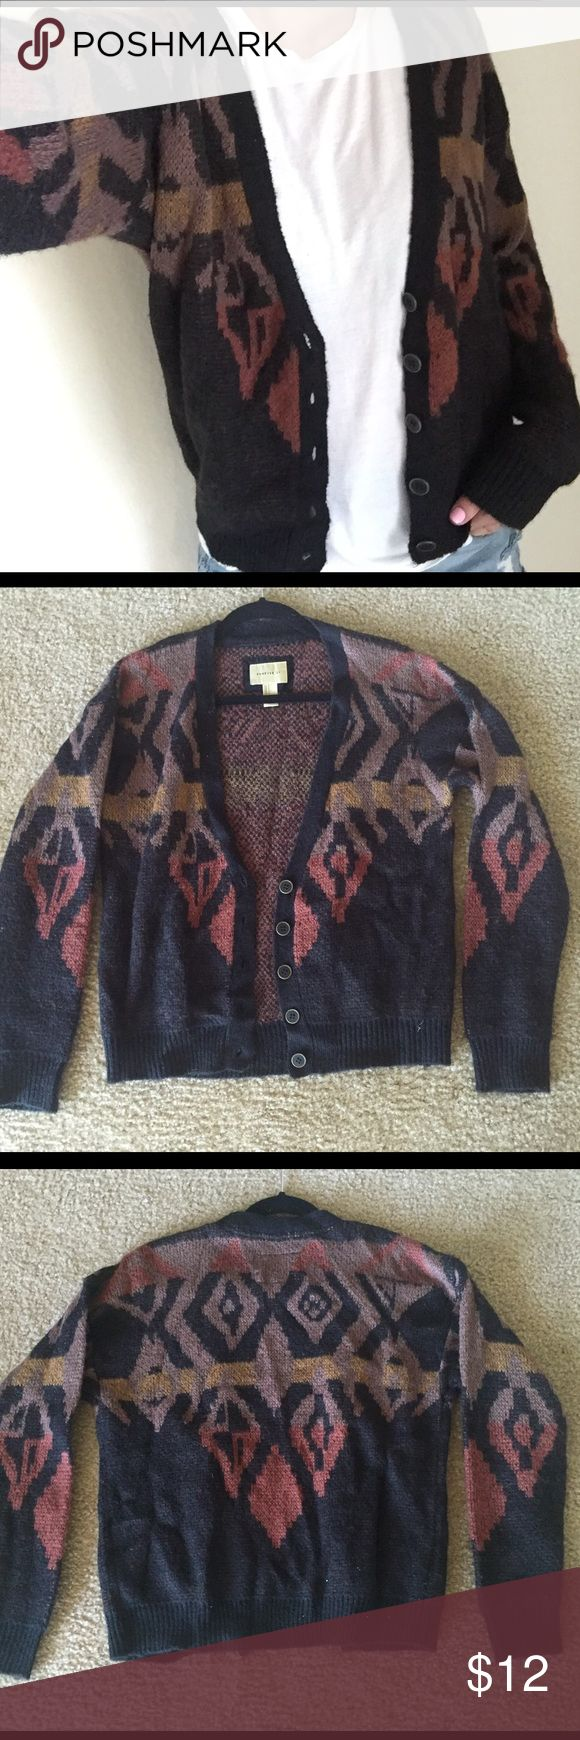 Tribal print cardigan Cozy tribal print cardigan! Size S, only worn once Forever 21 Sweaters Cardigans